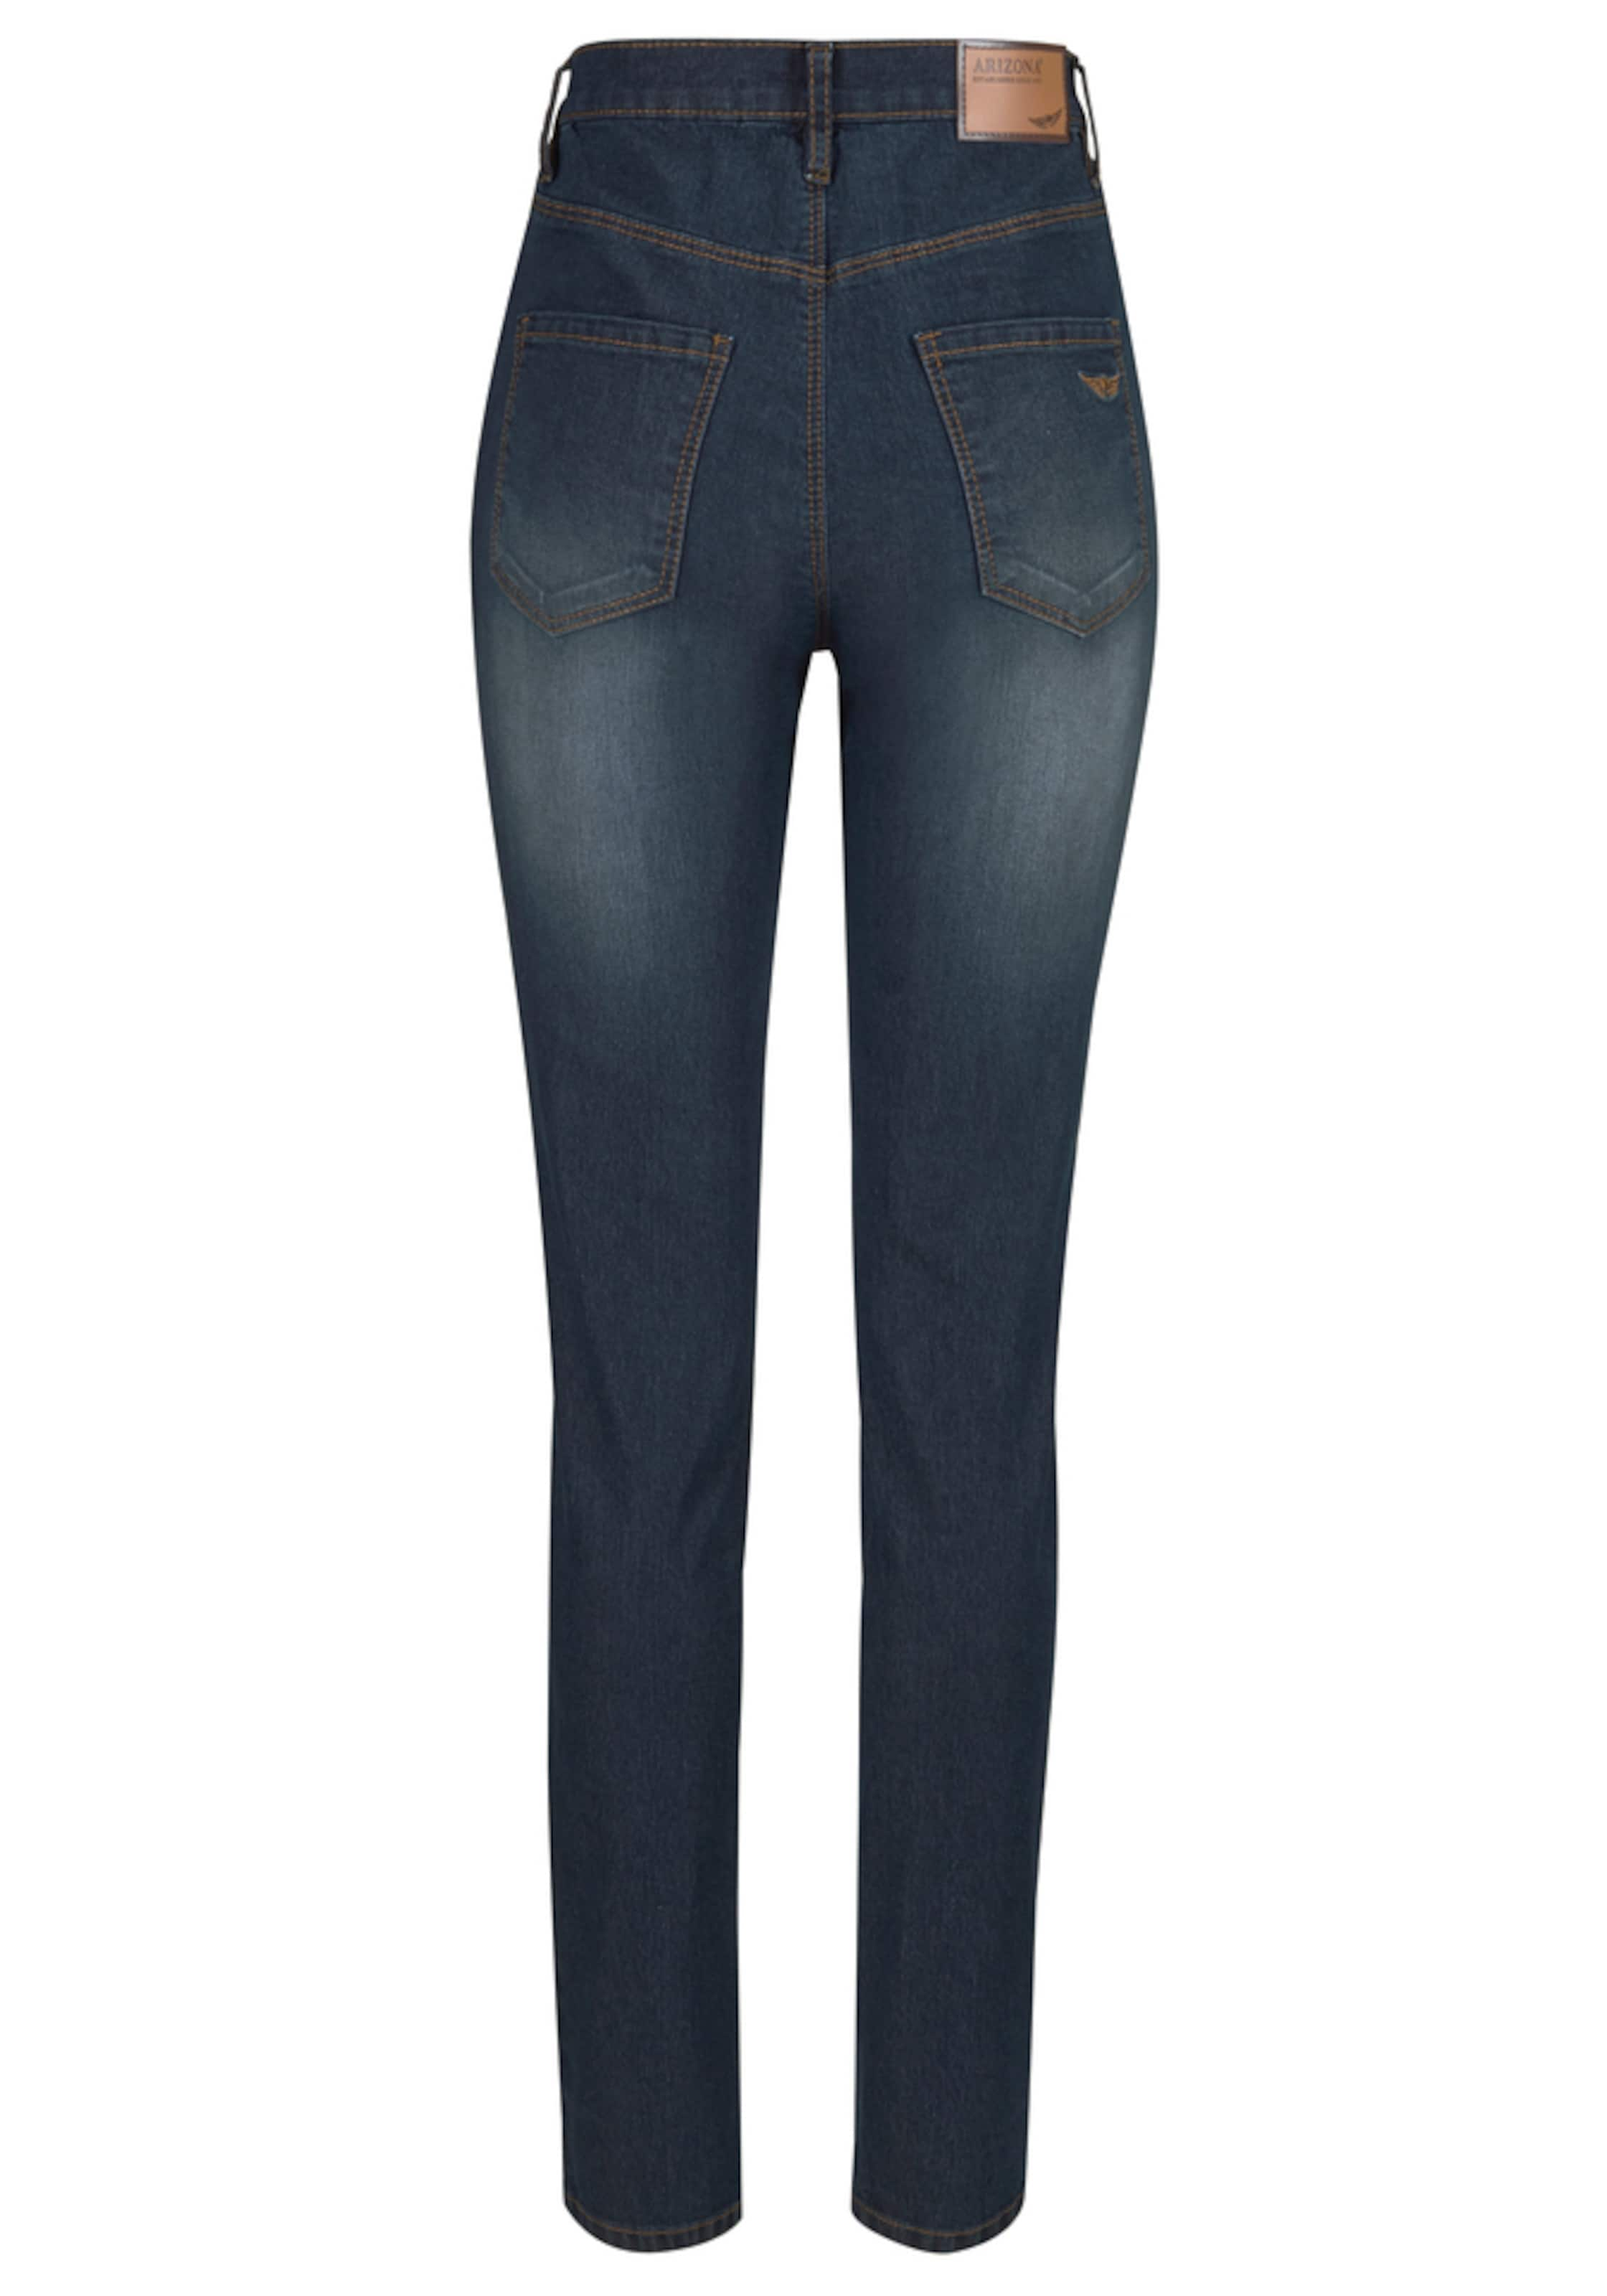 Jeansjeggings Jeggings' Waisted 'High ARIZONA ARIZONA ARIZONA Jeansjeggings 'High Jeggings' Waisted wPY7qcS